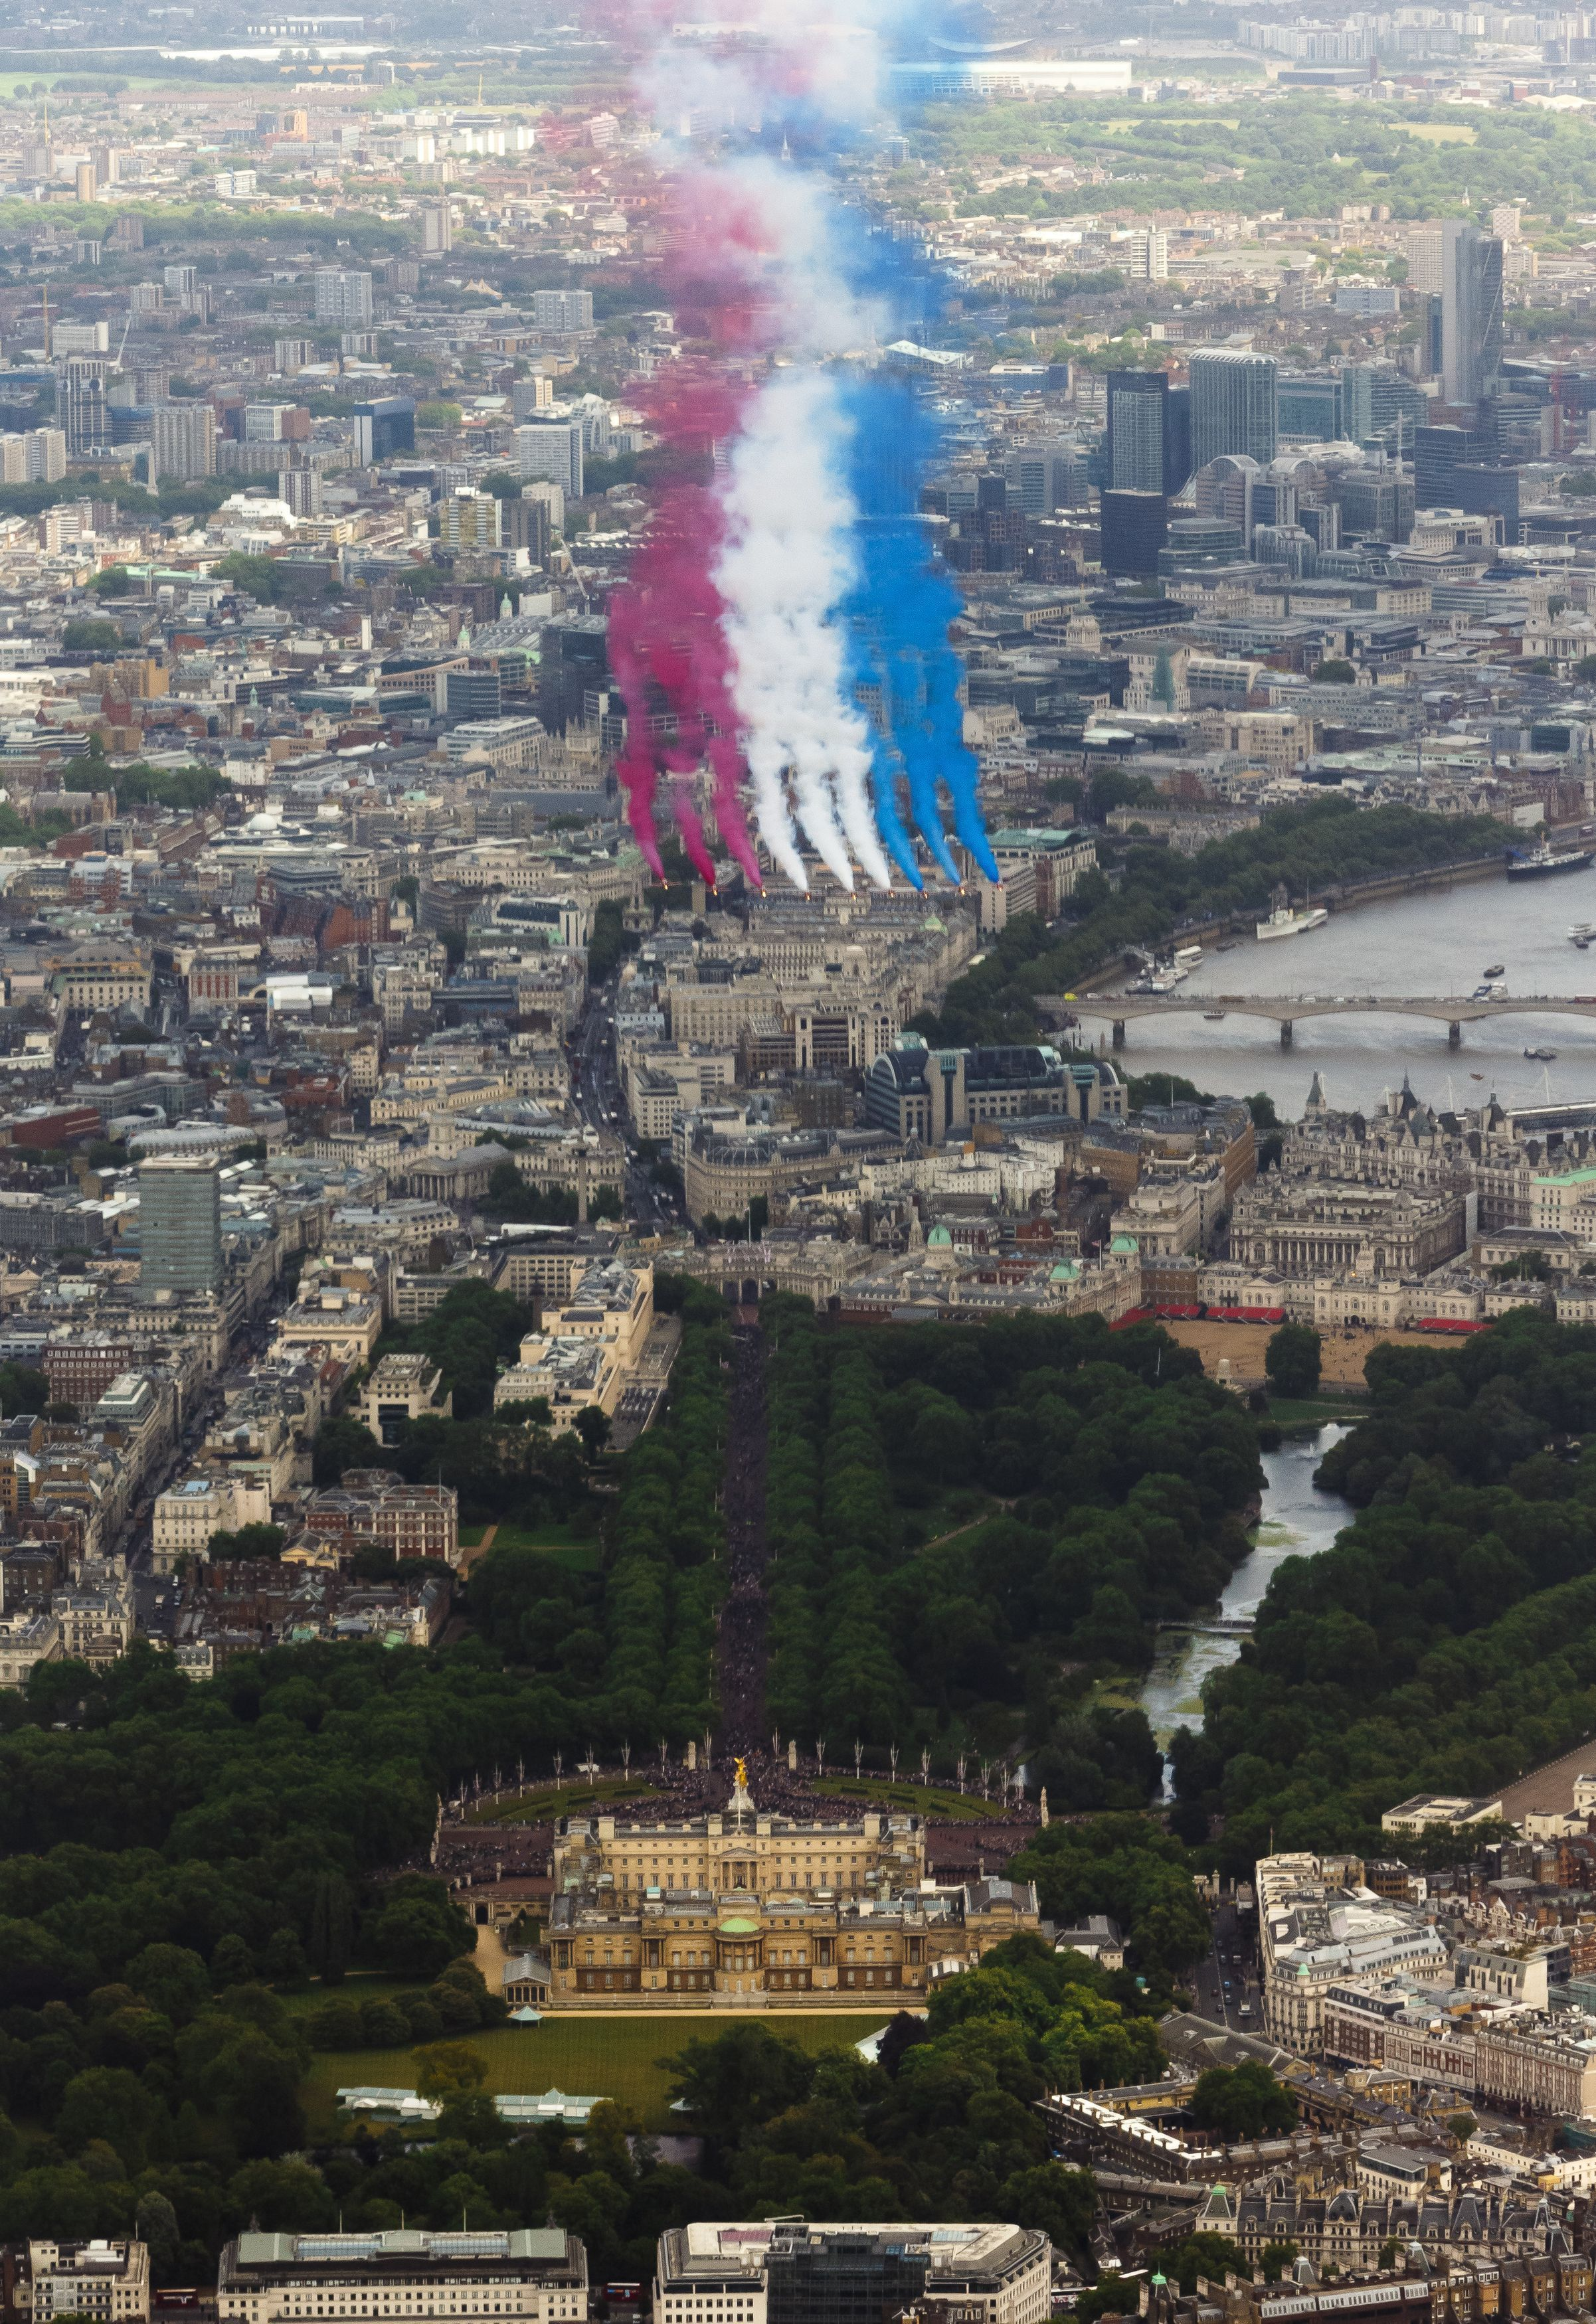 The RAF Red Arrows perform a flypast over Buckingham Palace, central London, following the Trooping the Colour